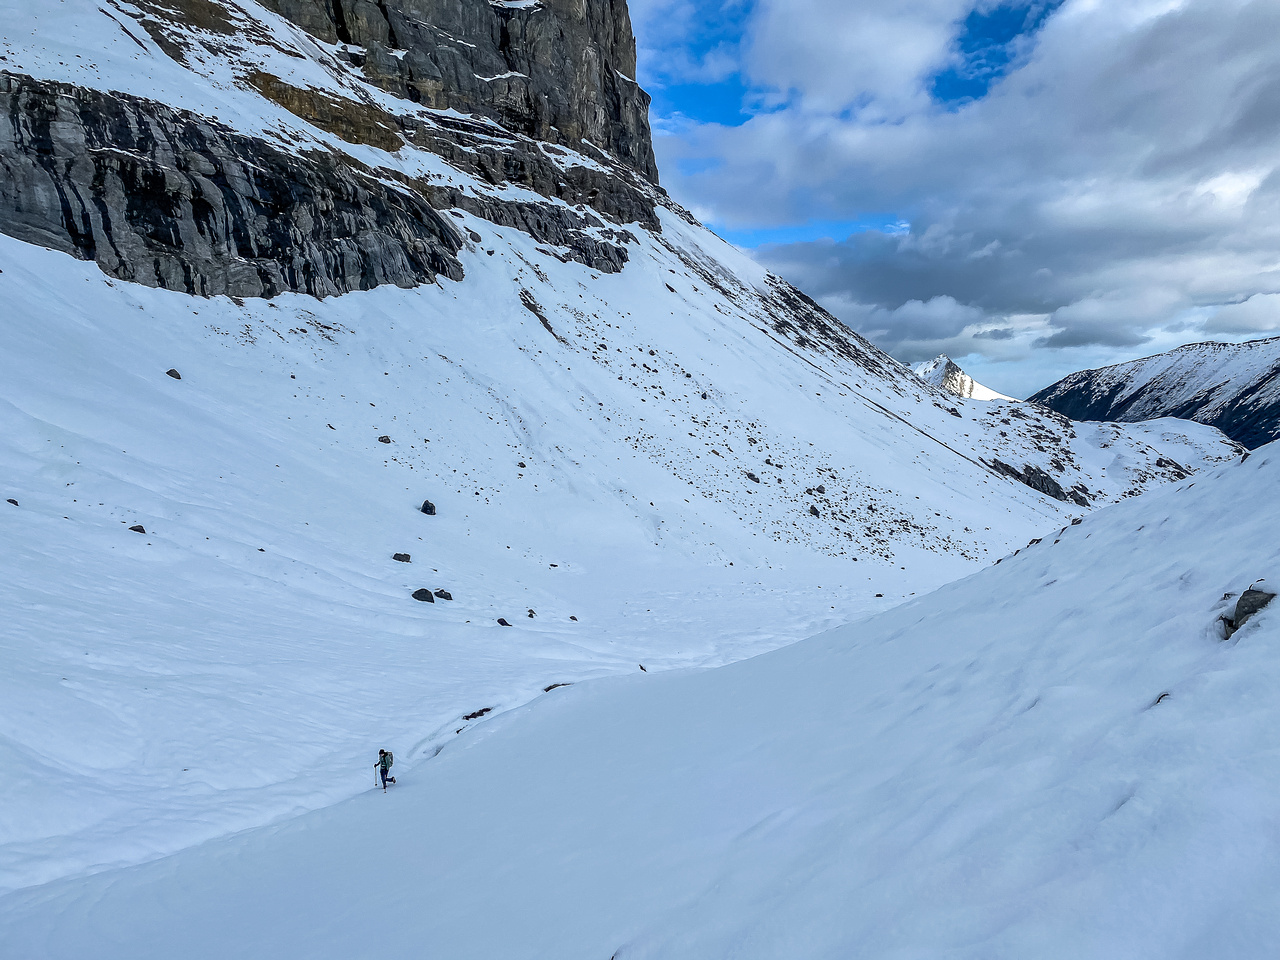 Hiking on snow beneath the west ridge leading up to the summit.